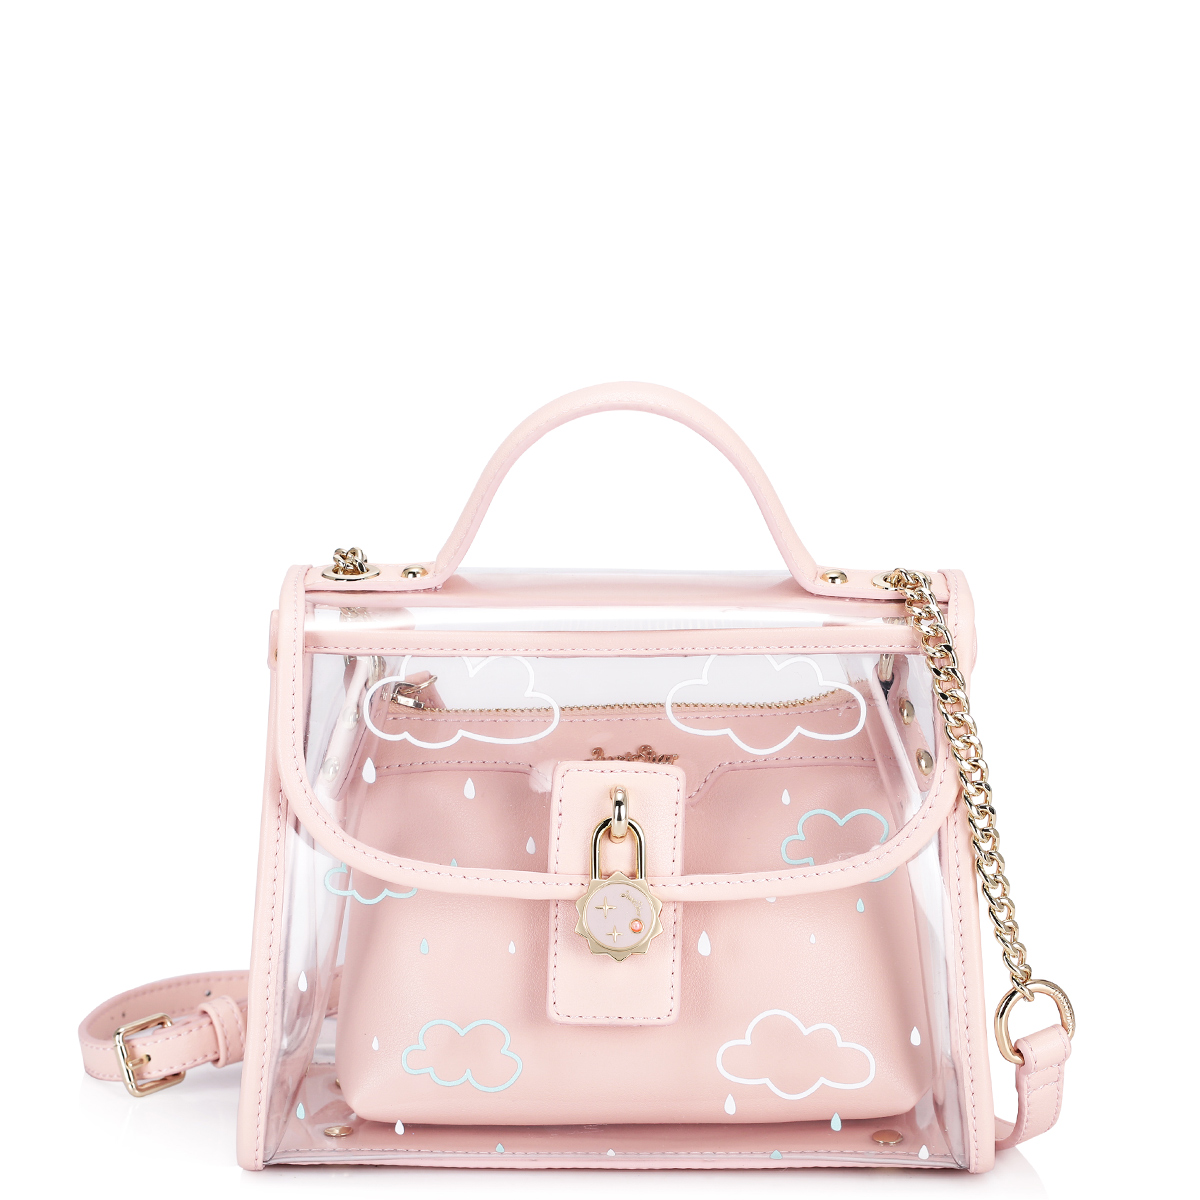 2017 Summer Pink Women Composite Bag Set For Beach PVC Clear Transparent Bags Shoulder Small Ladies Clutch Messenger Handbag